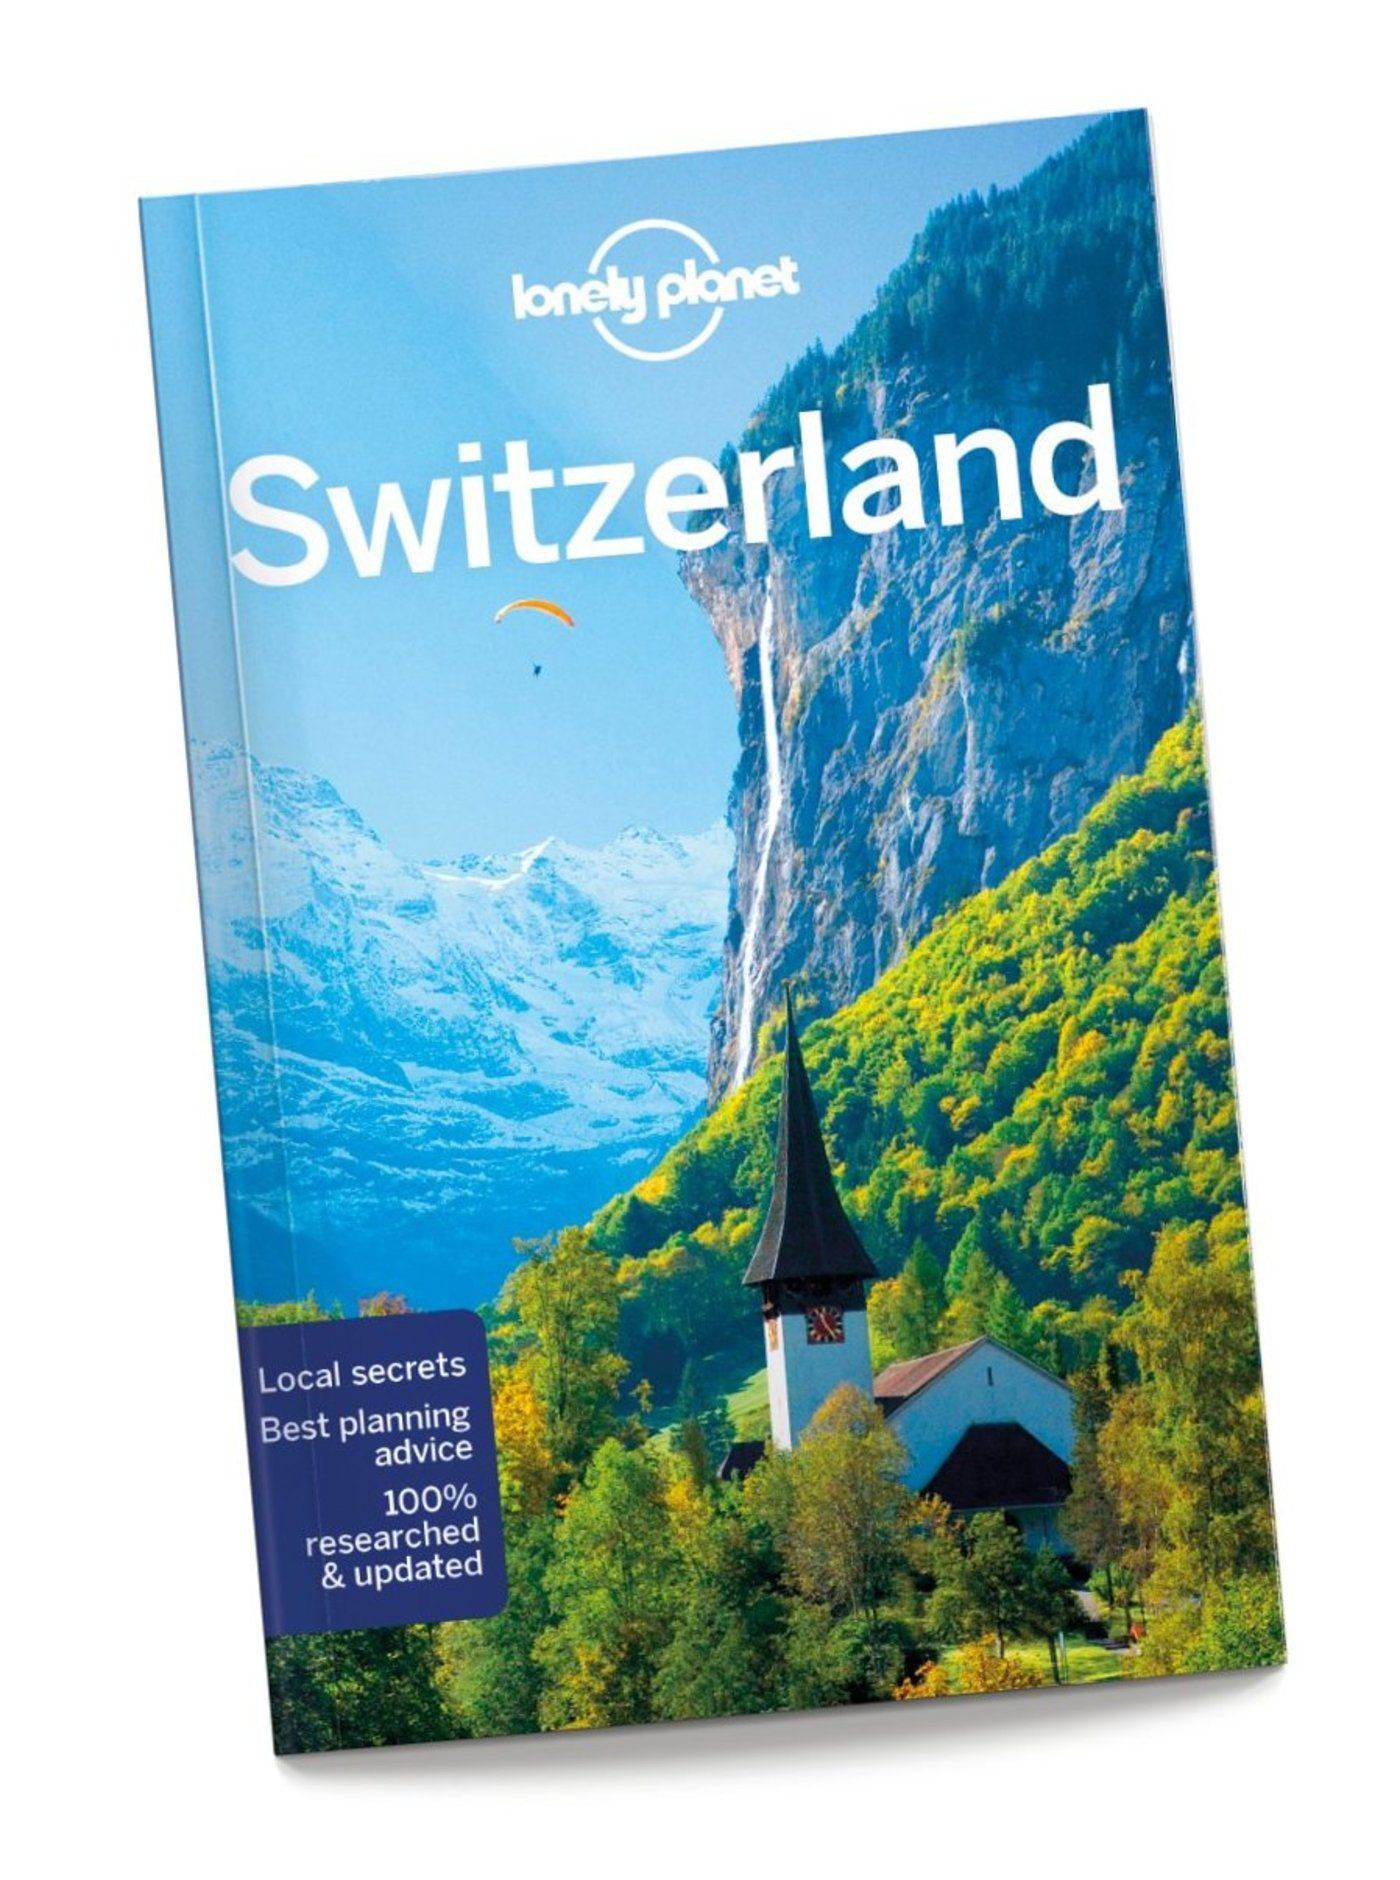 These Are The 20 Best Spots To Add To Your Switzerland border=